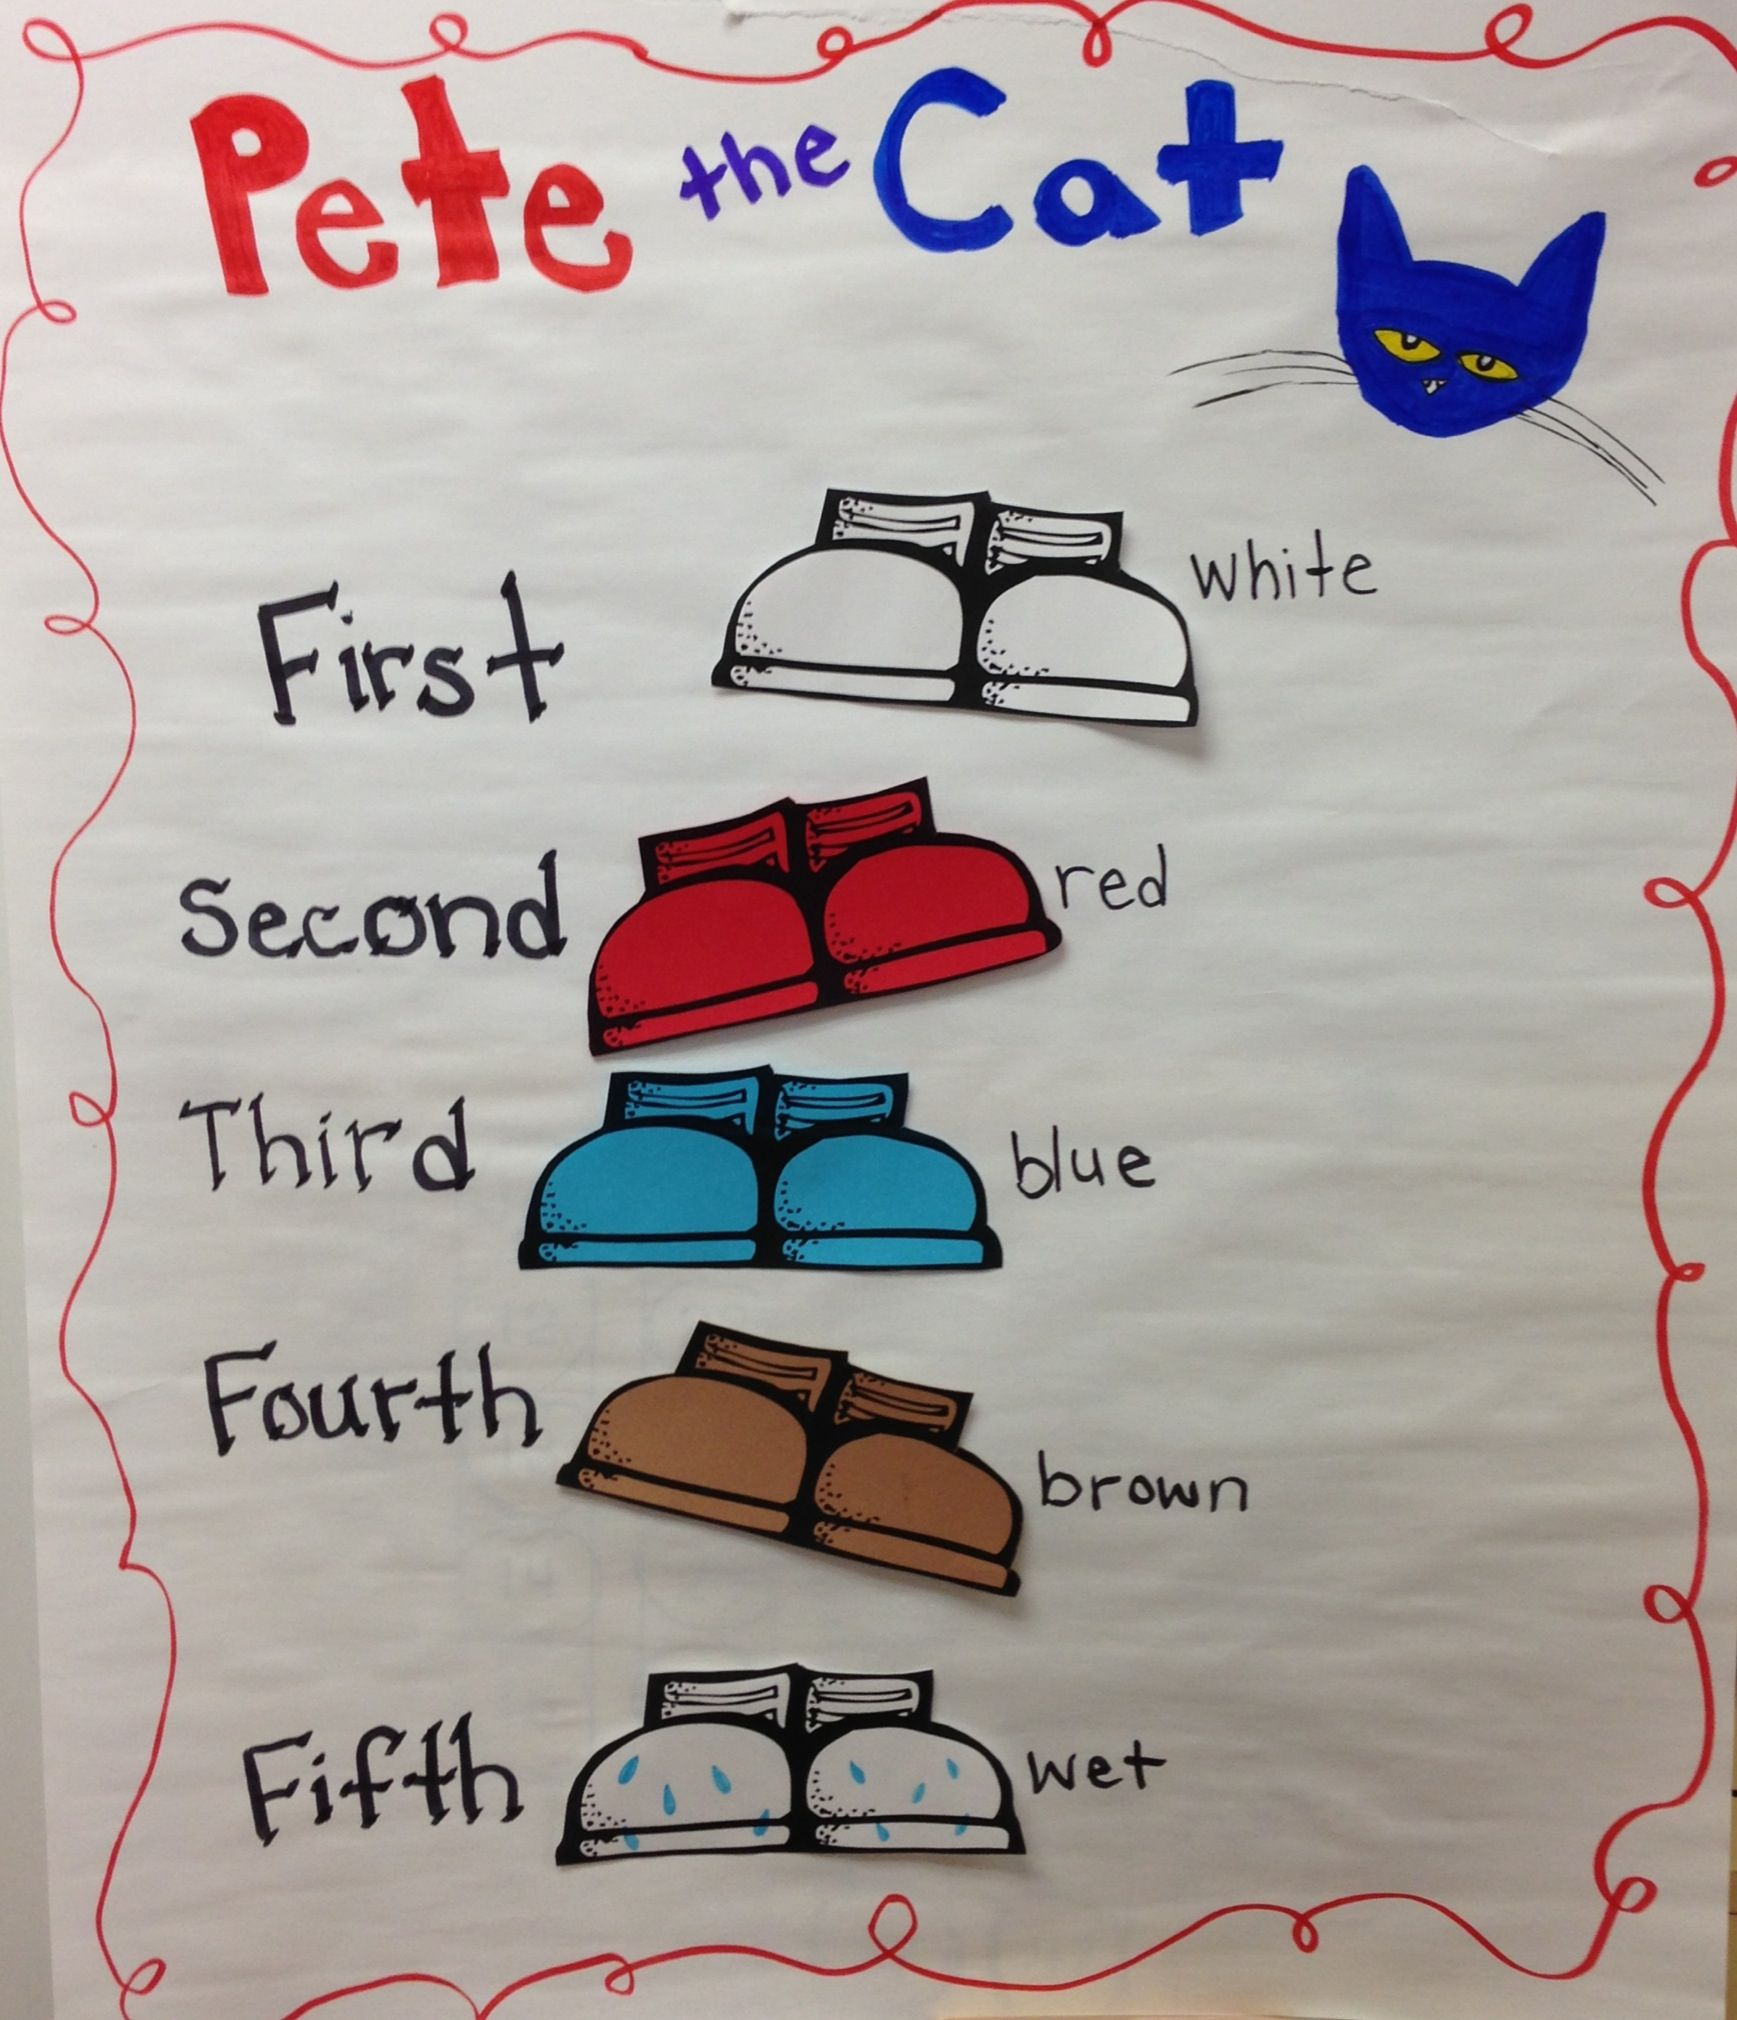 Pete the Cat   Ordinal Numbers or I am going to use it to sequence the story.